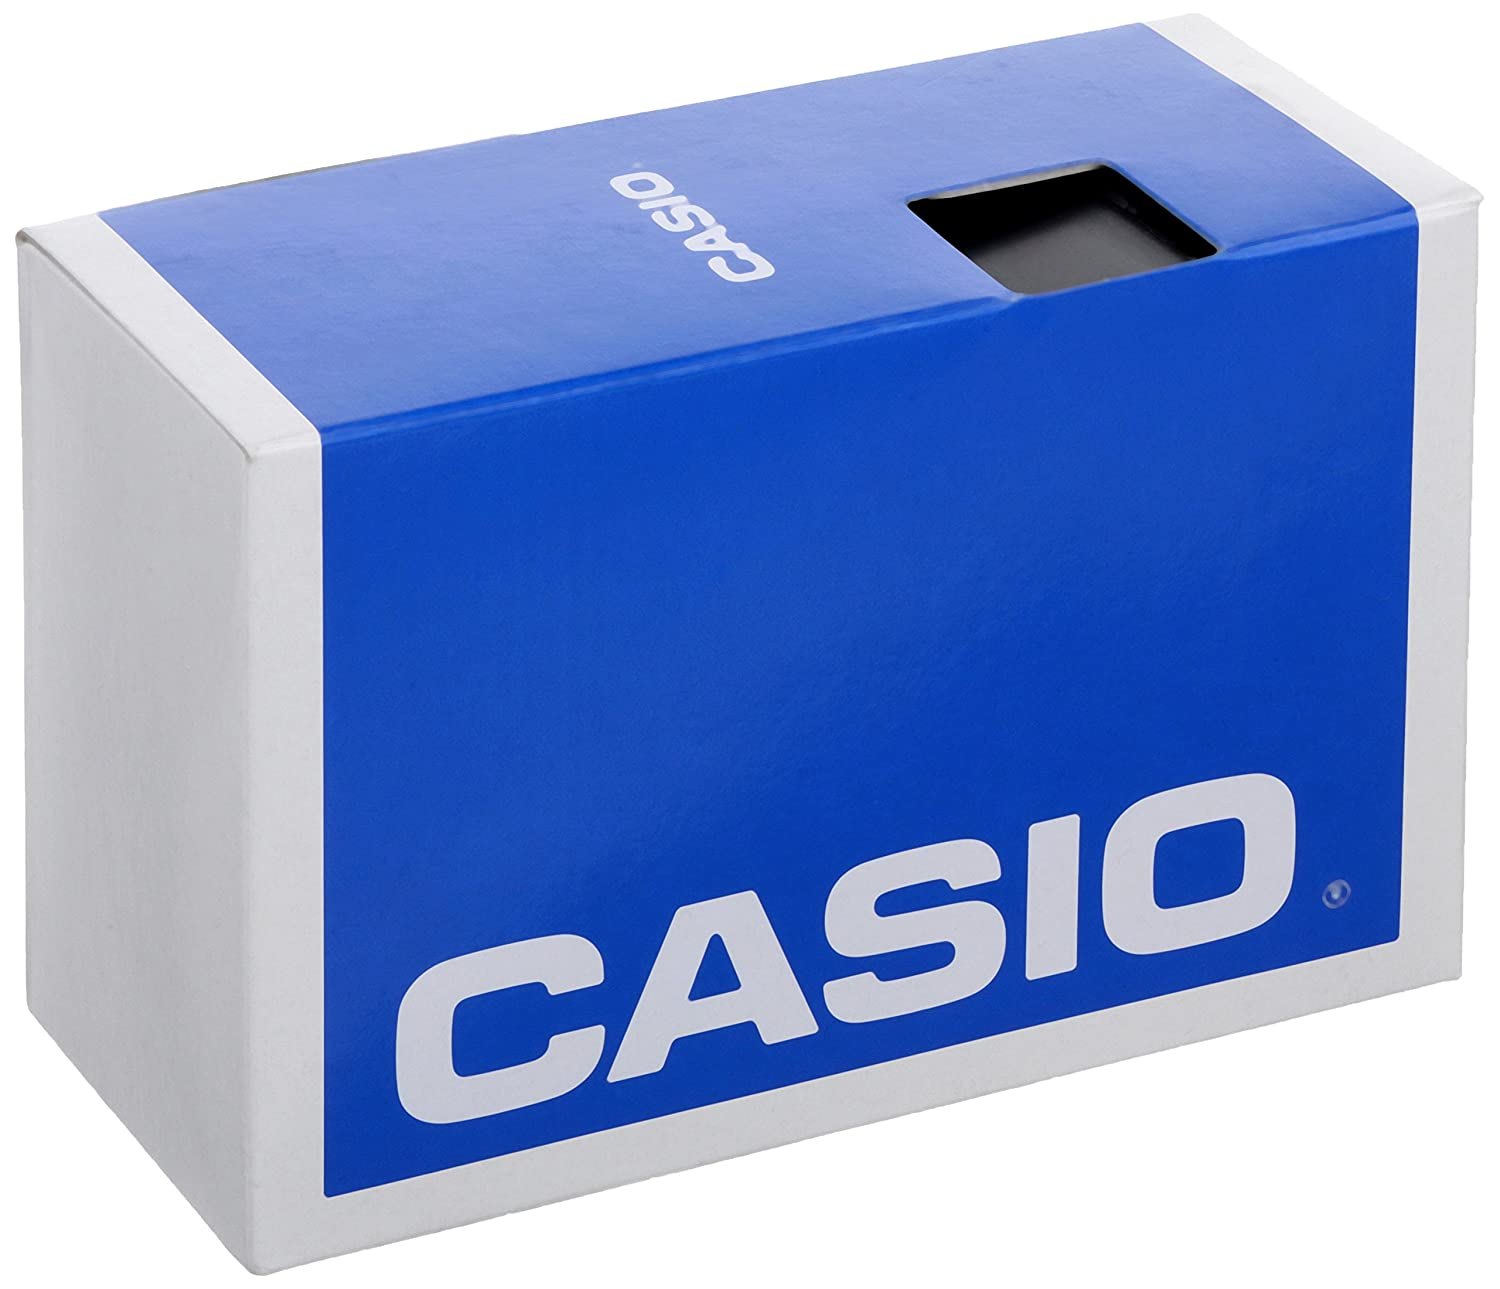 CASIO FT 500WC 5BVCF Forester Sport Watch Image 3